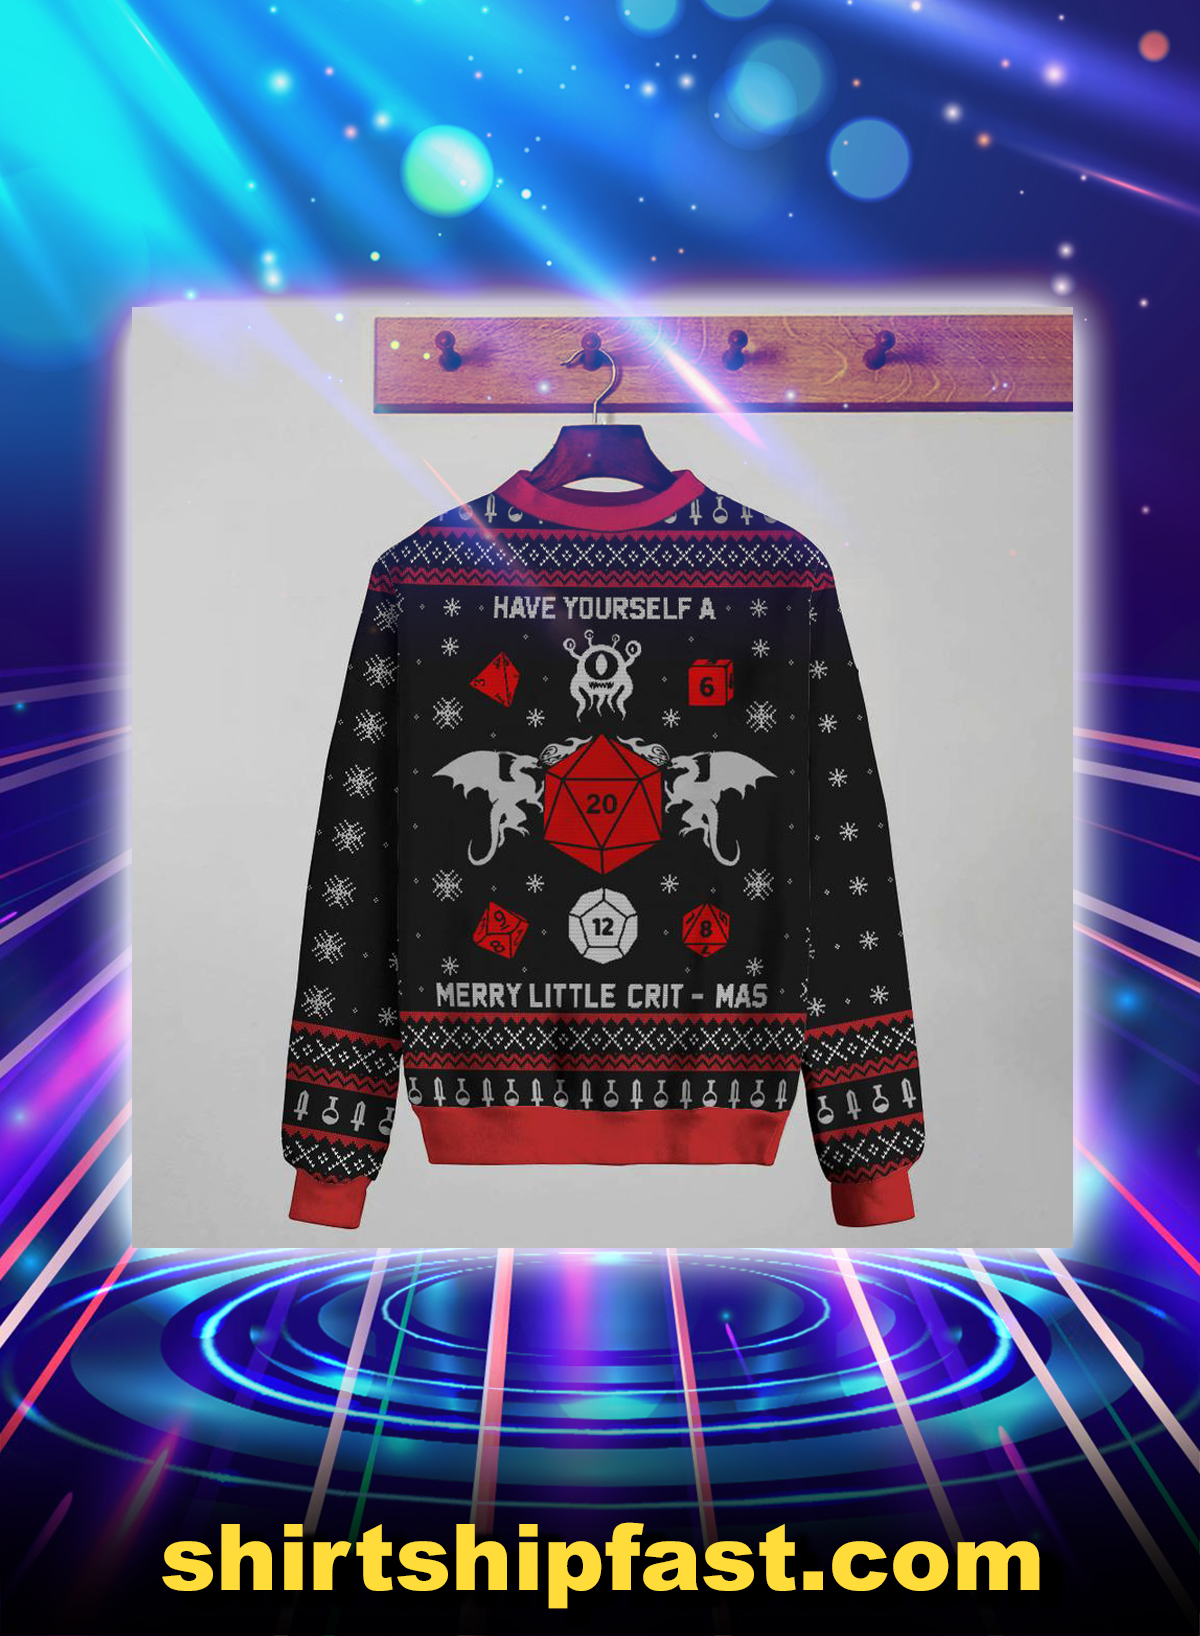 Have yourself a merry little crit-mas christmas sweater - Picture 1